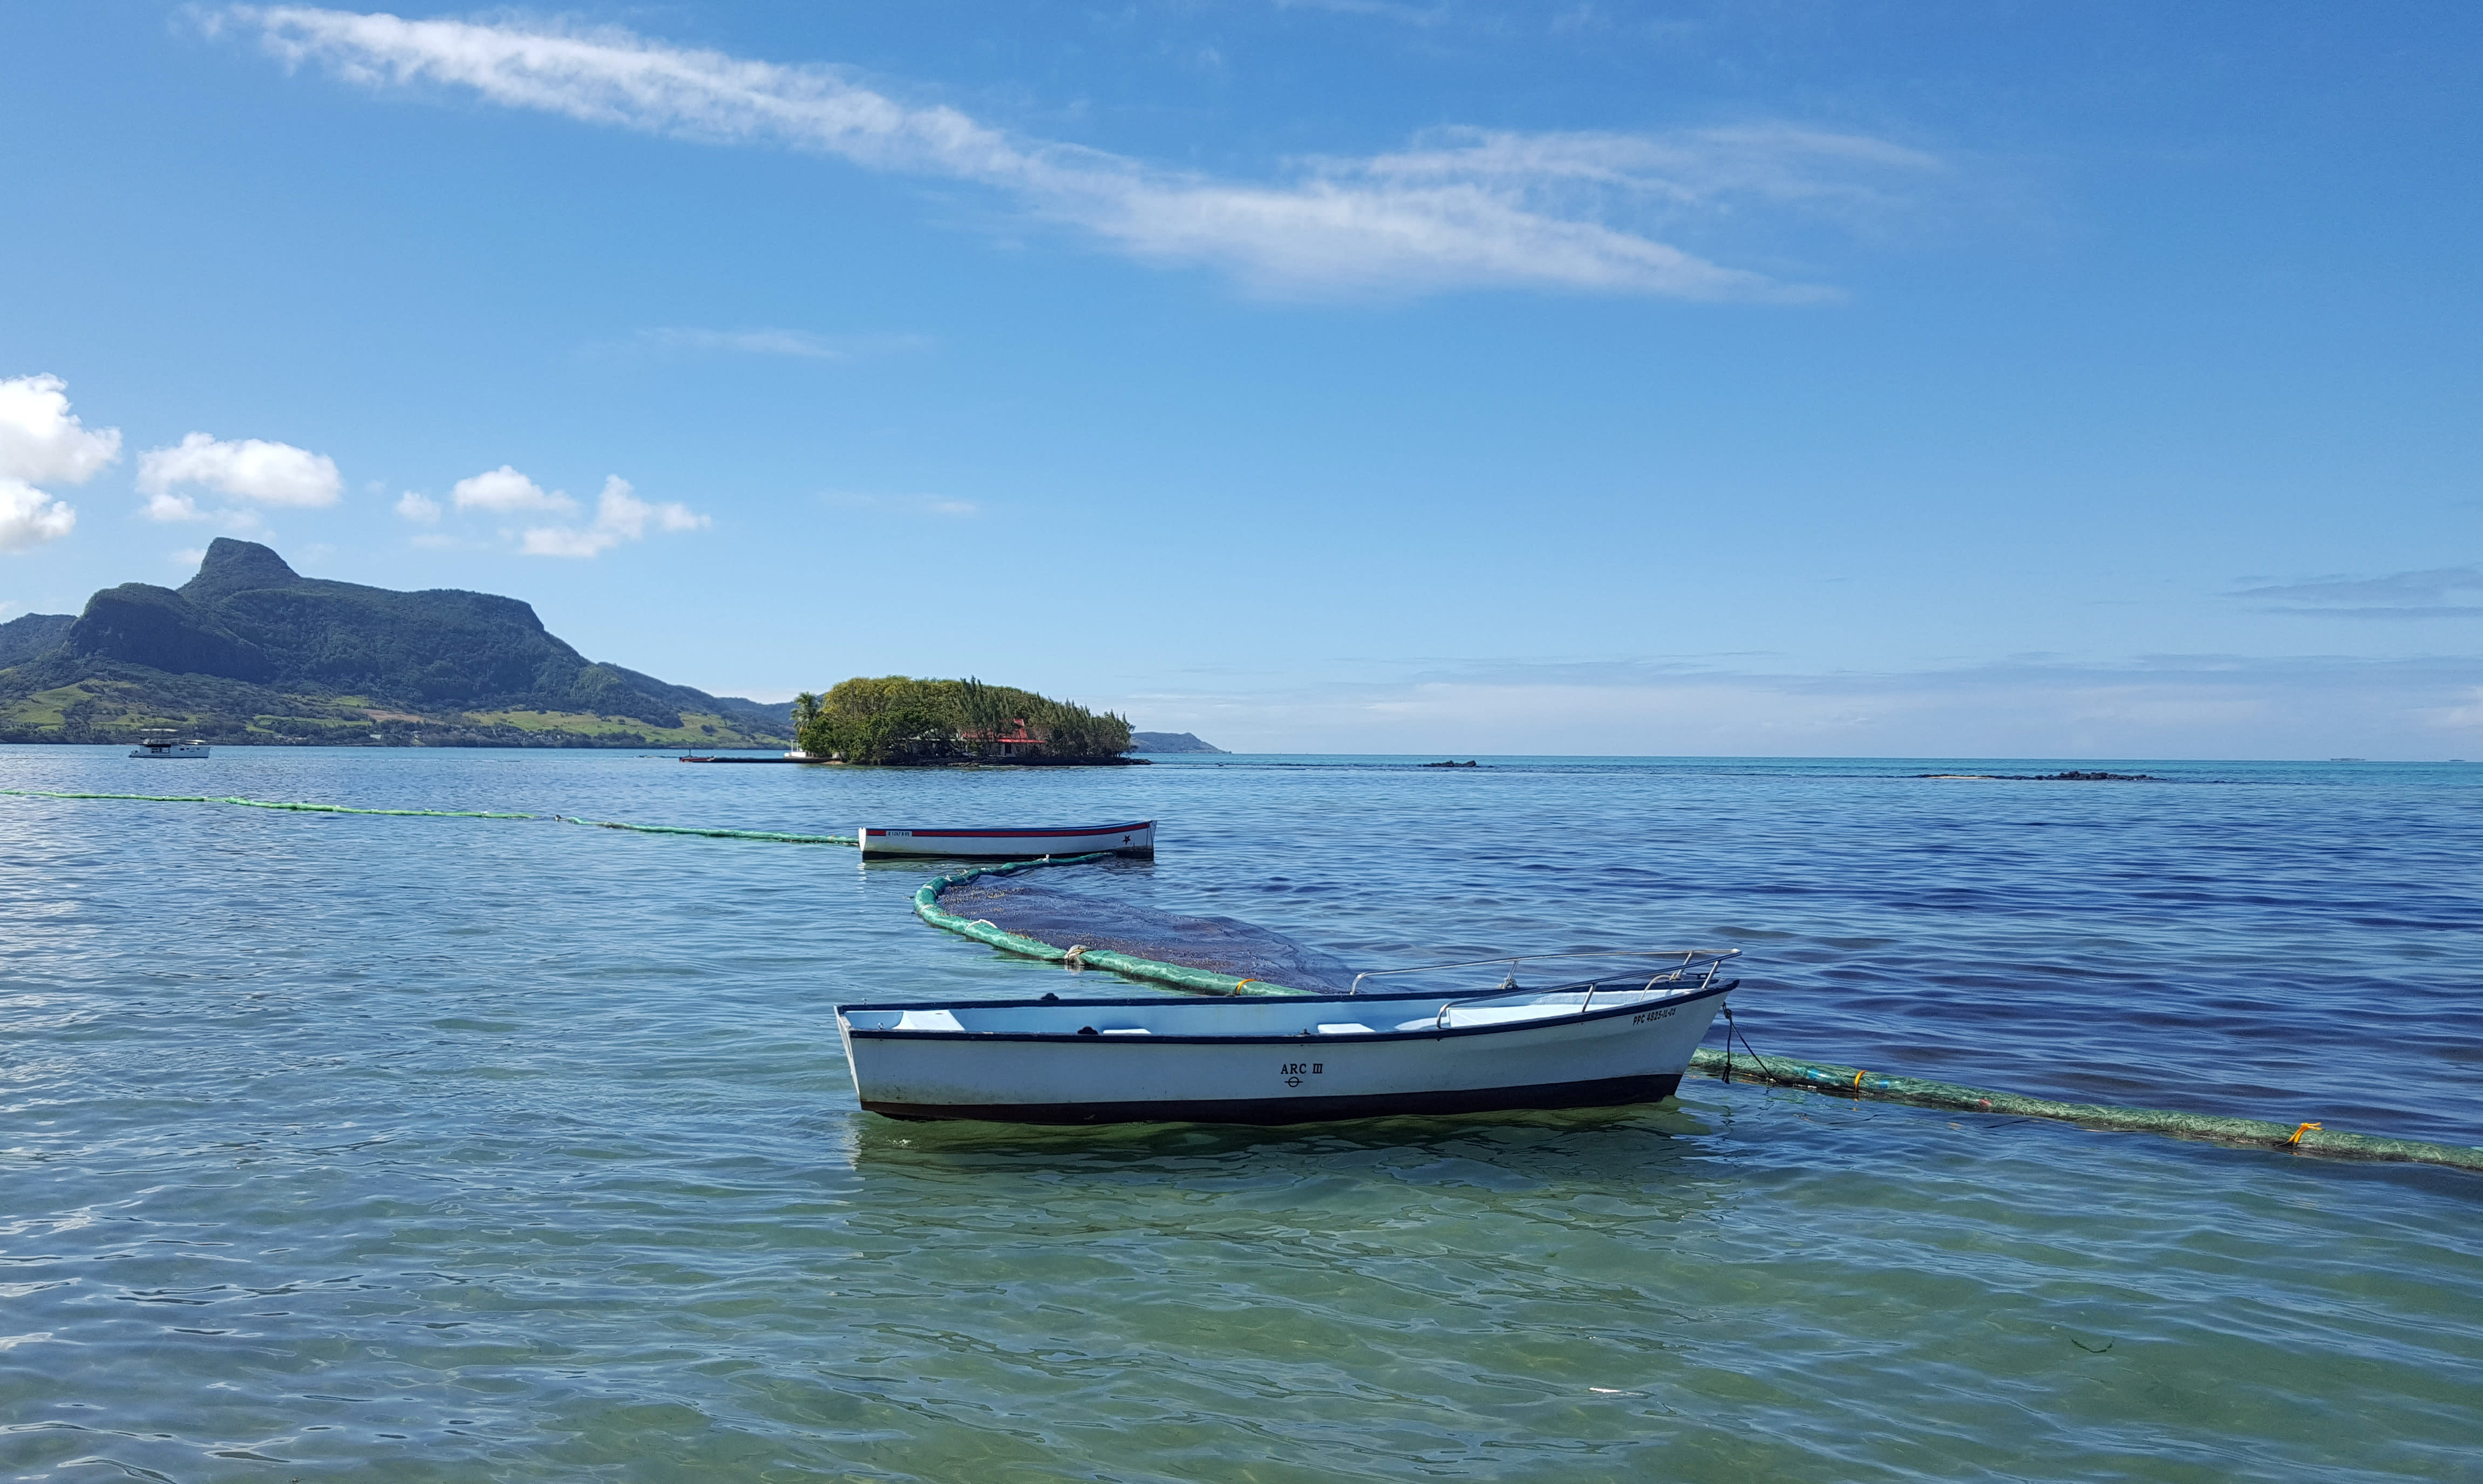 This photo taken and provided by Sophie Seneque, shows a boom, a temporary floating barrier used to contain the oil spill in Mahebourg Waterfront, Mauritius, Saturday Aug. 8, 2020, after it leaked from the MV Wakashio, a bulk carrier ship that recently ran aground off the southeast coast of Mauritius. Thousands of students, environmental activists and residents of Mauritius are working around the clock to reduce the damage done to the Indian Ocean island from an oil spill after a ship ran aground on a coral reef. Shipping officials said an estimated 1 ton of oil from the Japanese ship's cargo of 4 tons has escaped into the sea. Workers were trying to stop more oil from leaking, but with high winds and rough seas on Sunday there were reports of new cracks in the ship's hull. (Sophie Seneque via AP)